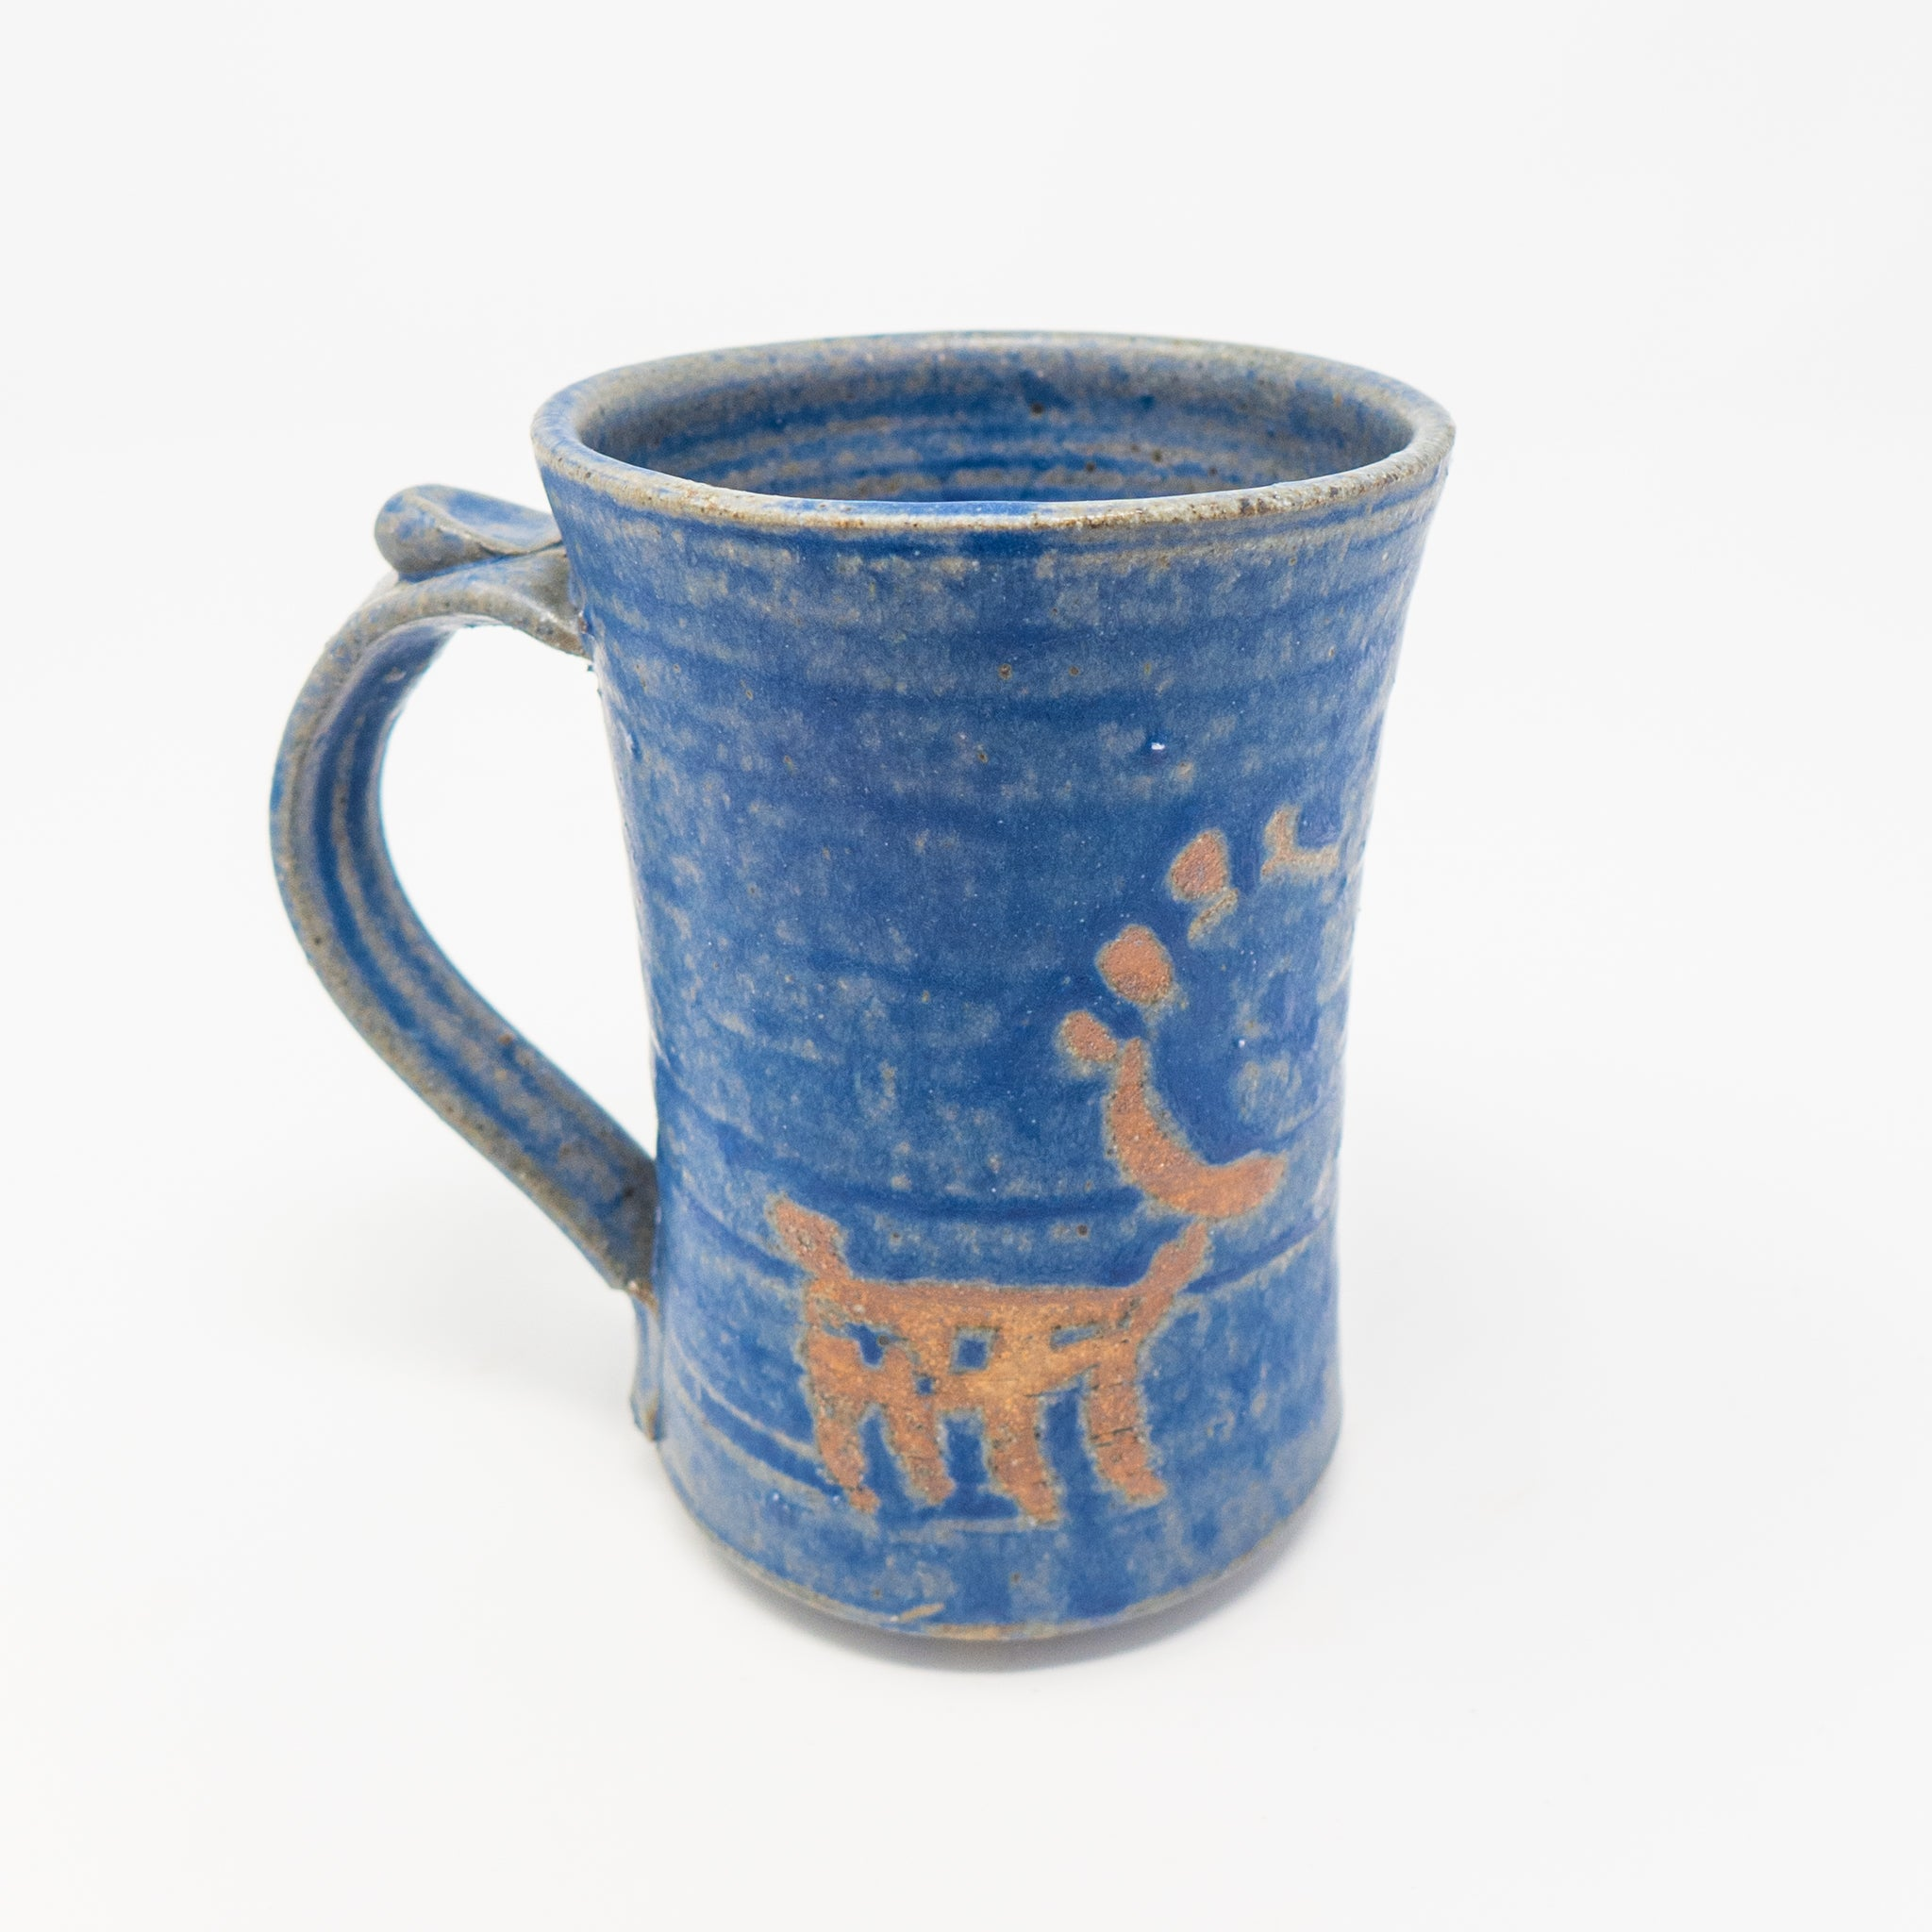 Reindeer and Moon Mug